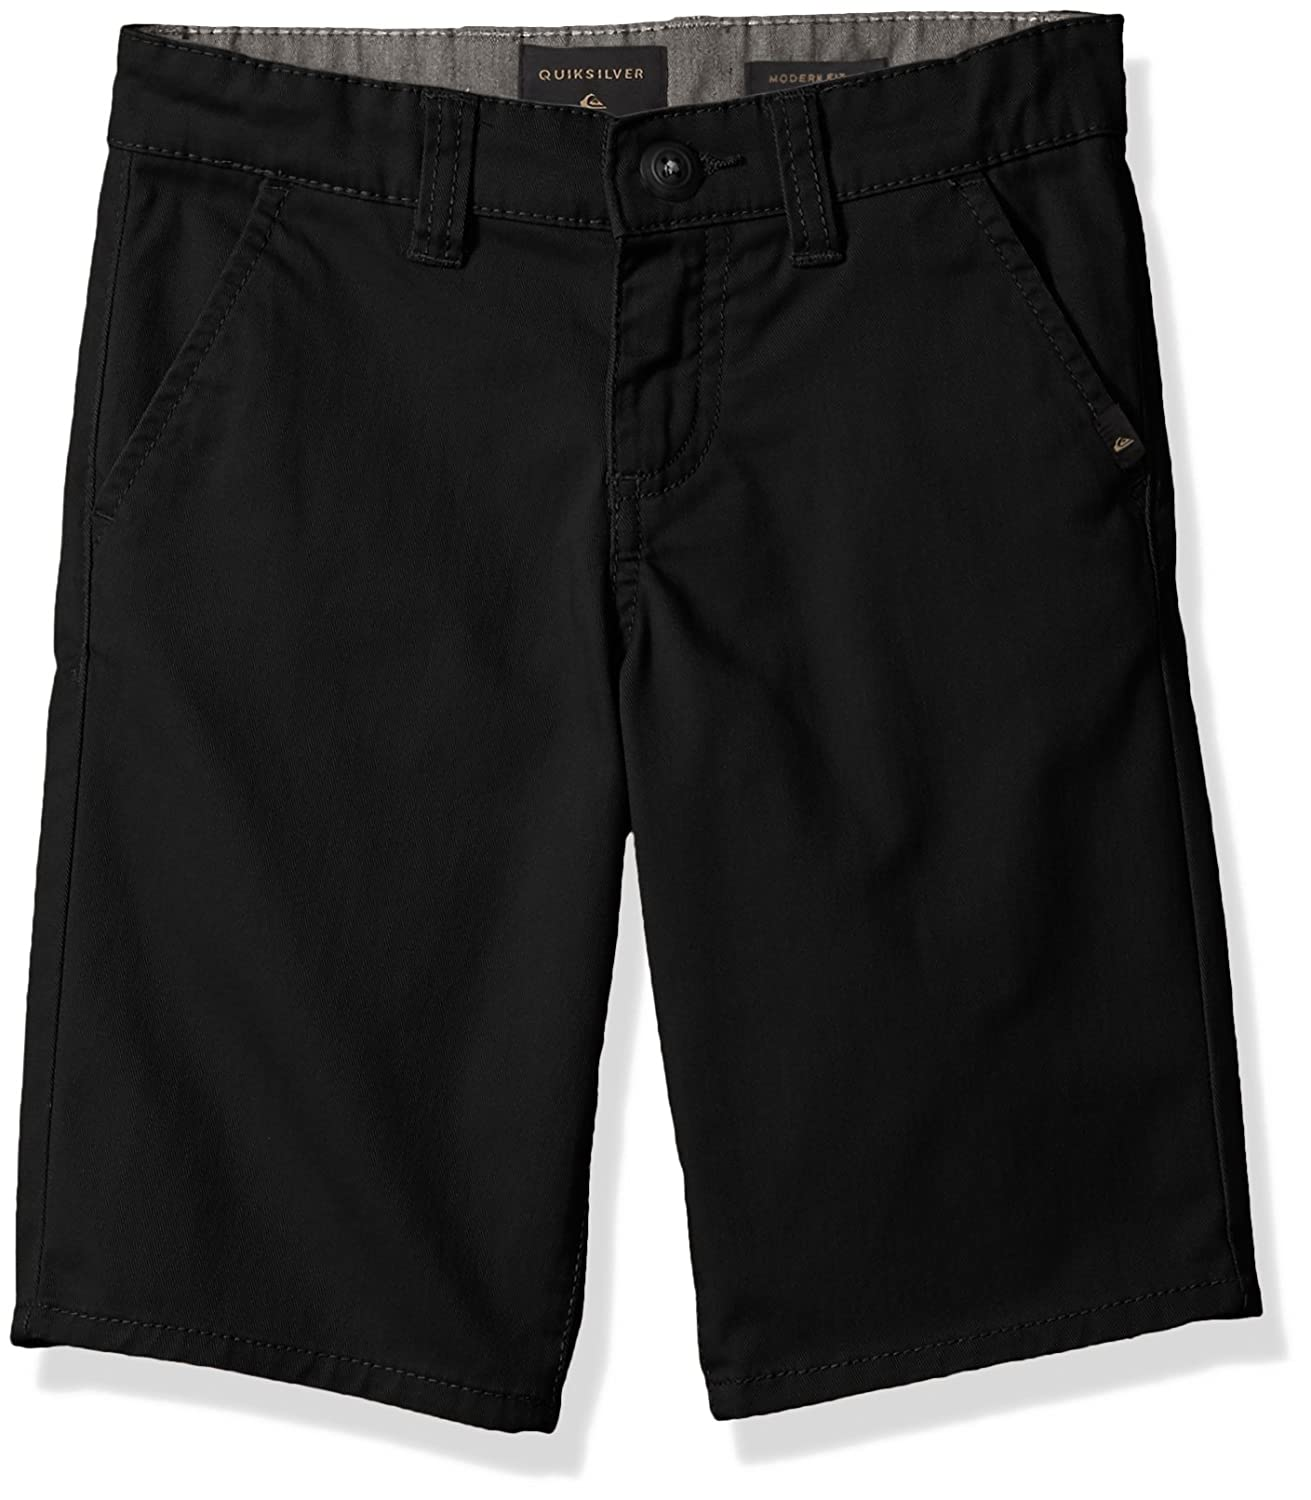 Quiksilver Boys 2-7 Everyday Union - Chino Shorts Size 5